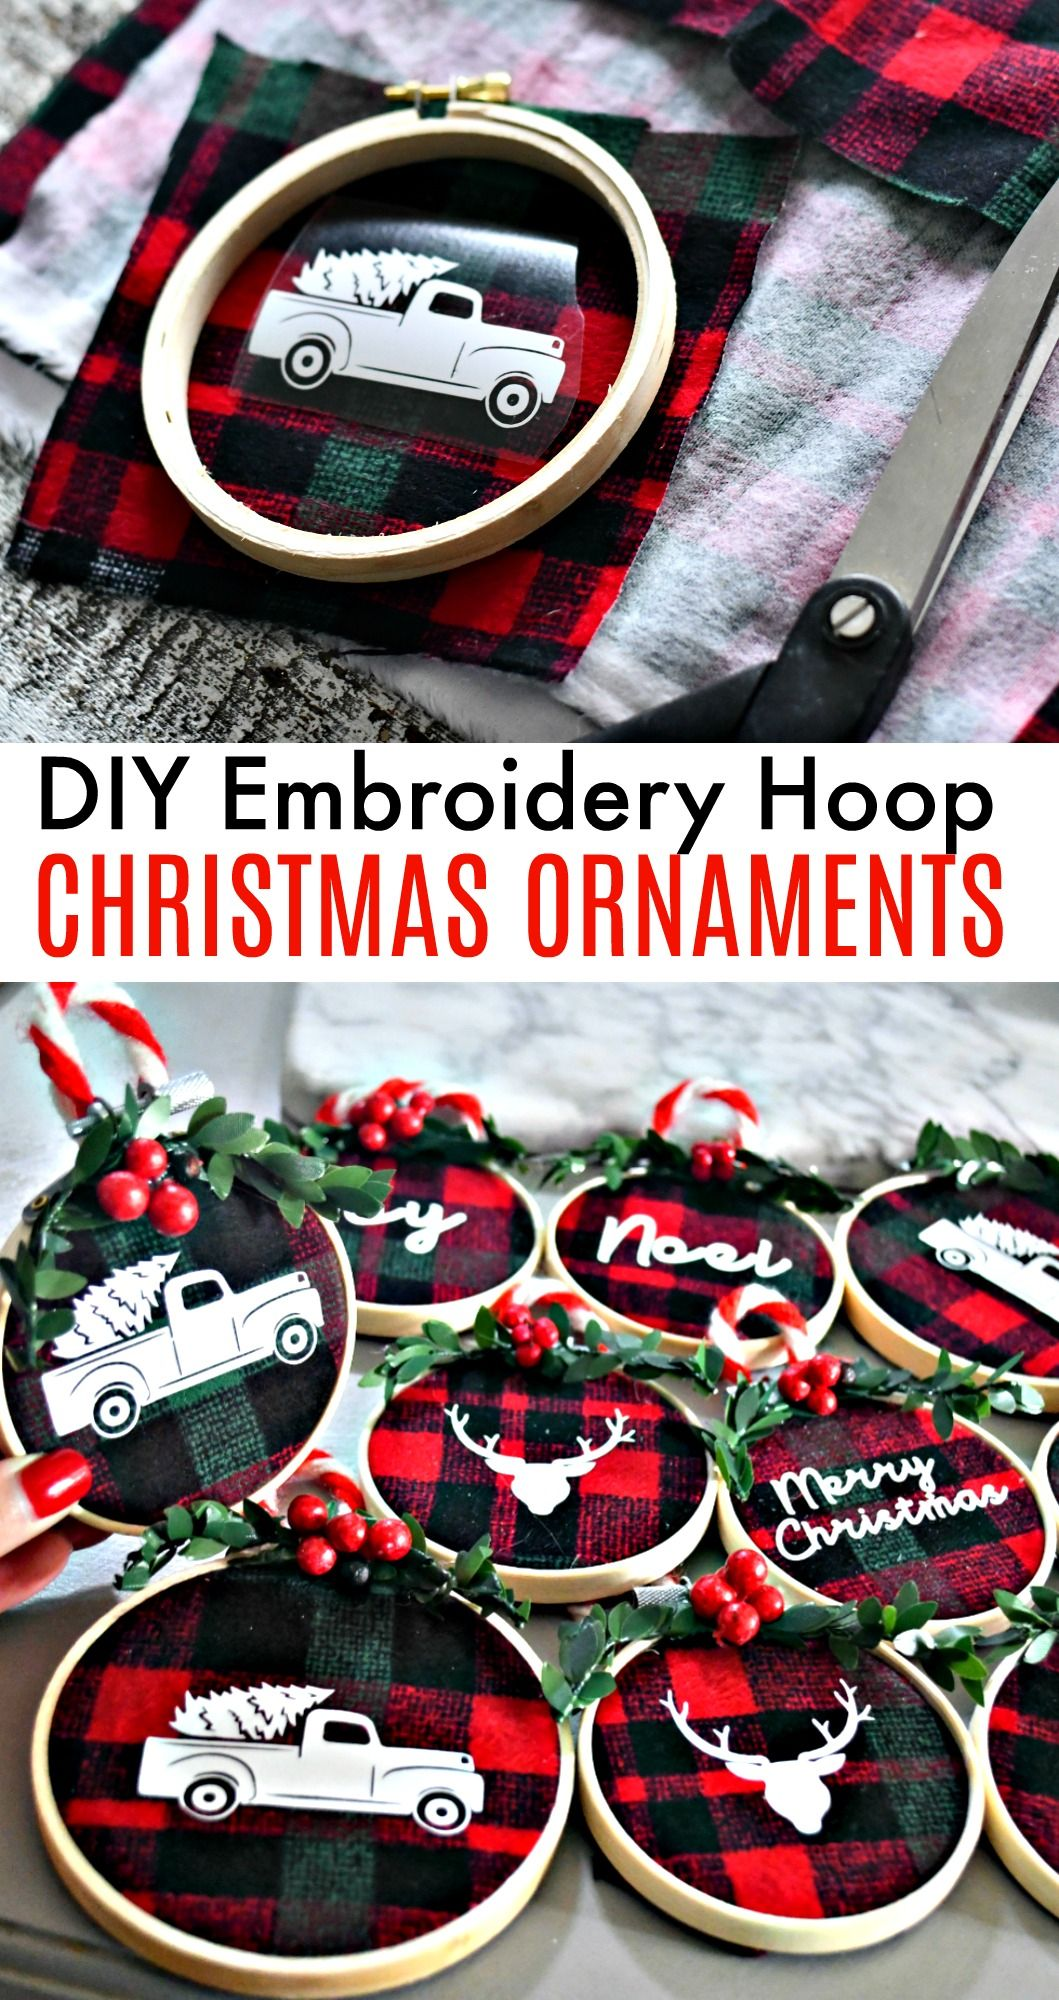 DIY Embroidery Hoop Christmas Ornaments #christmascraftstosell